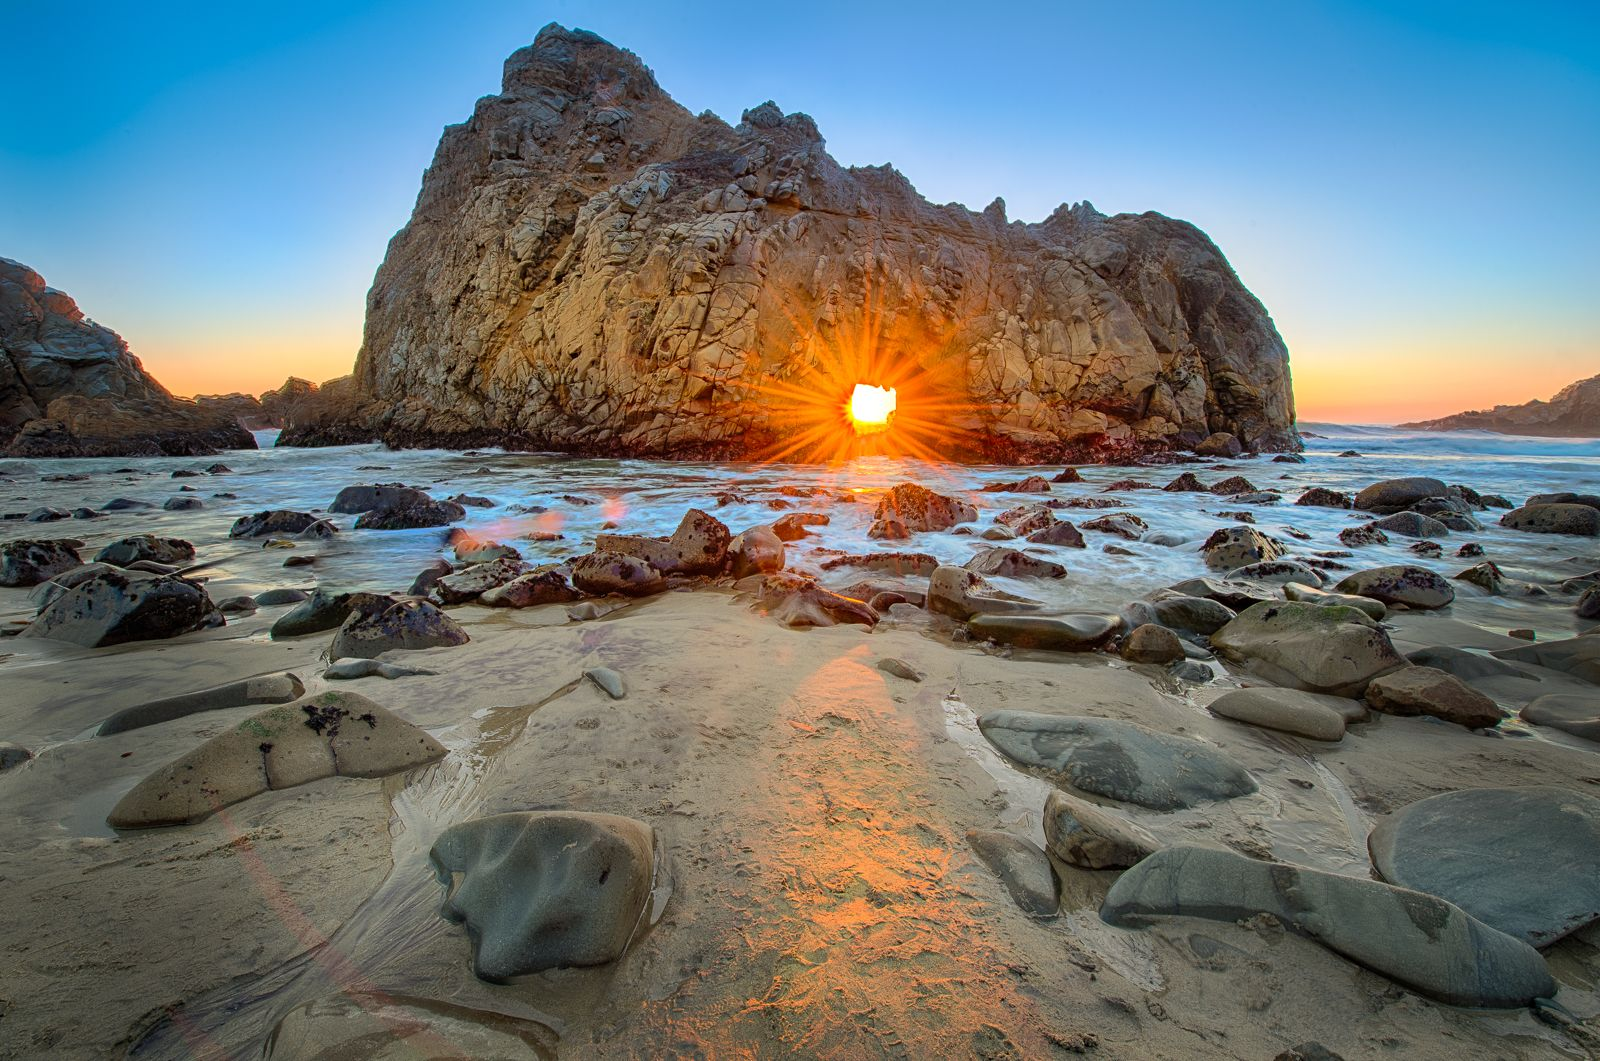 Pfeiffer Beach Sur Ca Things To Do In Tags Camping Hiking Marathon Hotels Bridge